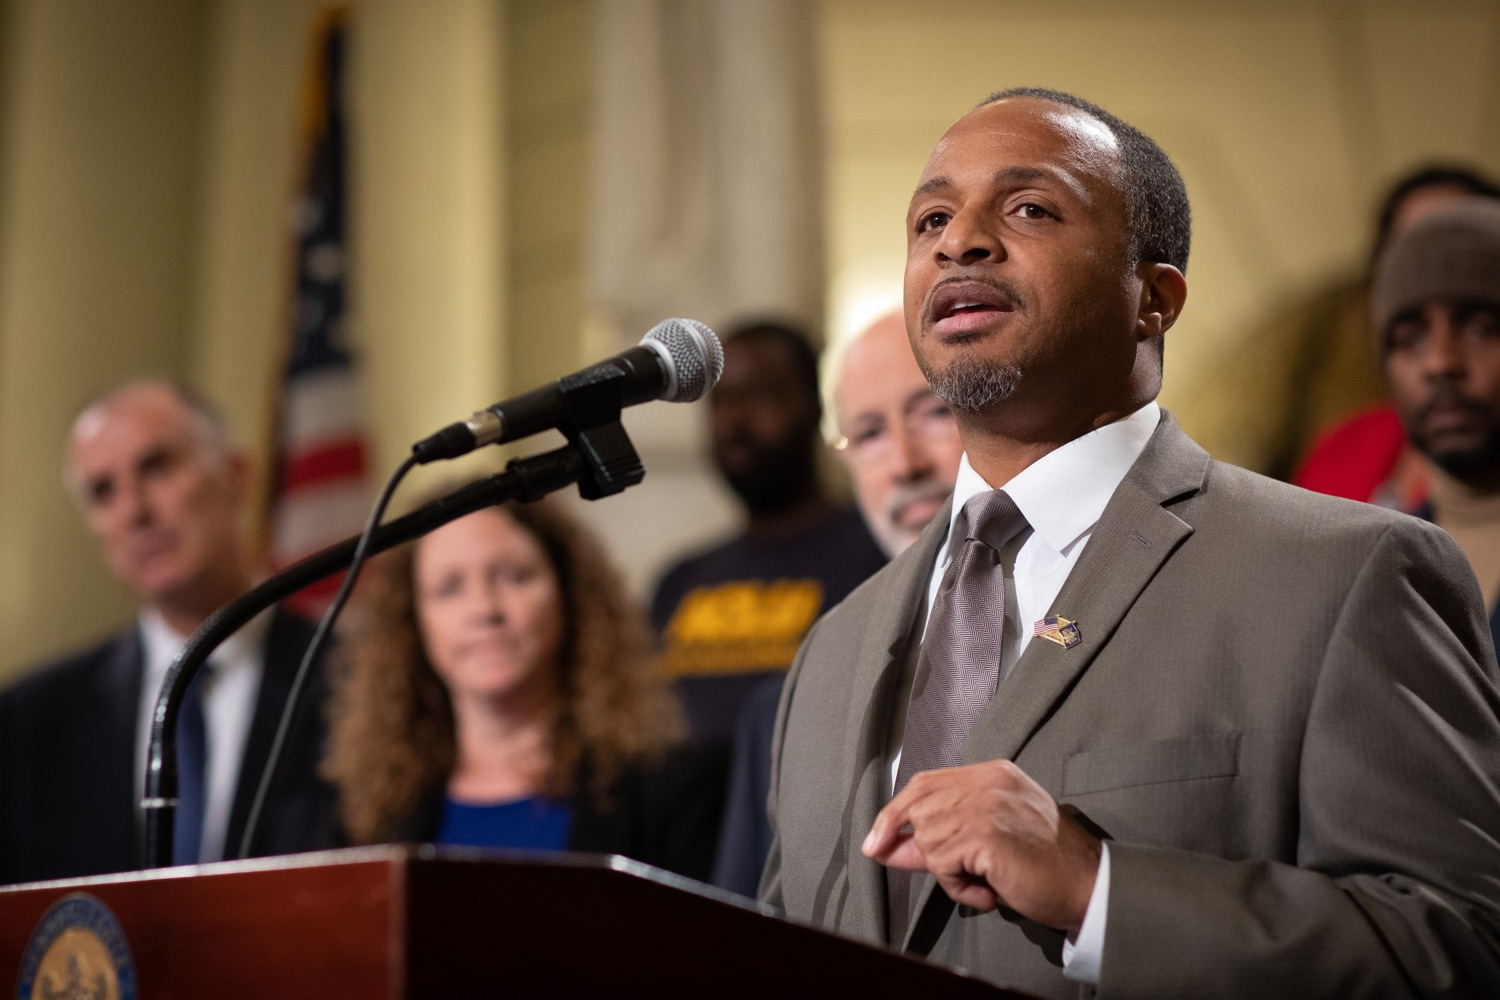 """<a href=""""https://filesource.wostreaming.net/commonwealthofpa/photo/17601_gov_right_on_crime_dz_019.jpg"""" target=""""_blank"""">⇣Download Photo<br></a>Deputy Secretary of Corrections Christian Stephens speaking at the event. Governor Tom Wolf was joined by Deputy Secretary of Corrections Christian Stephens and national criminal justice reform advocates today in the Capitol Rotunda to push for commonsense probation reforms that address probation sentences and probation lengths.  Harrisburg, PA  November 18, 2019"""